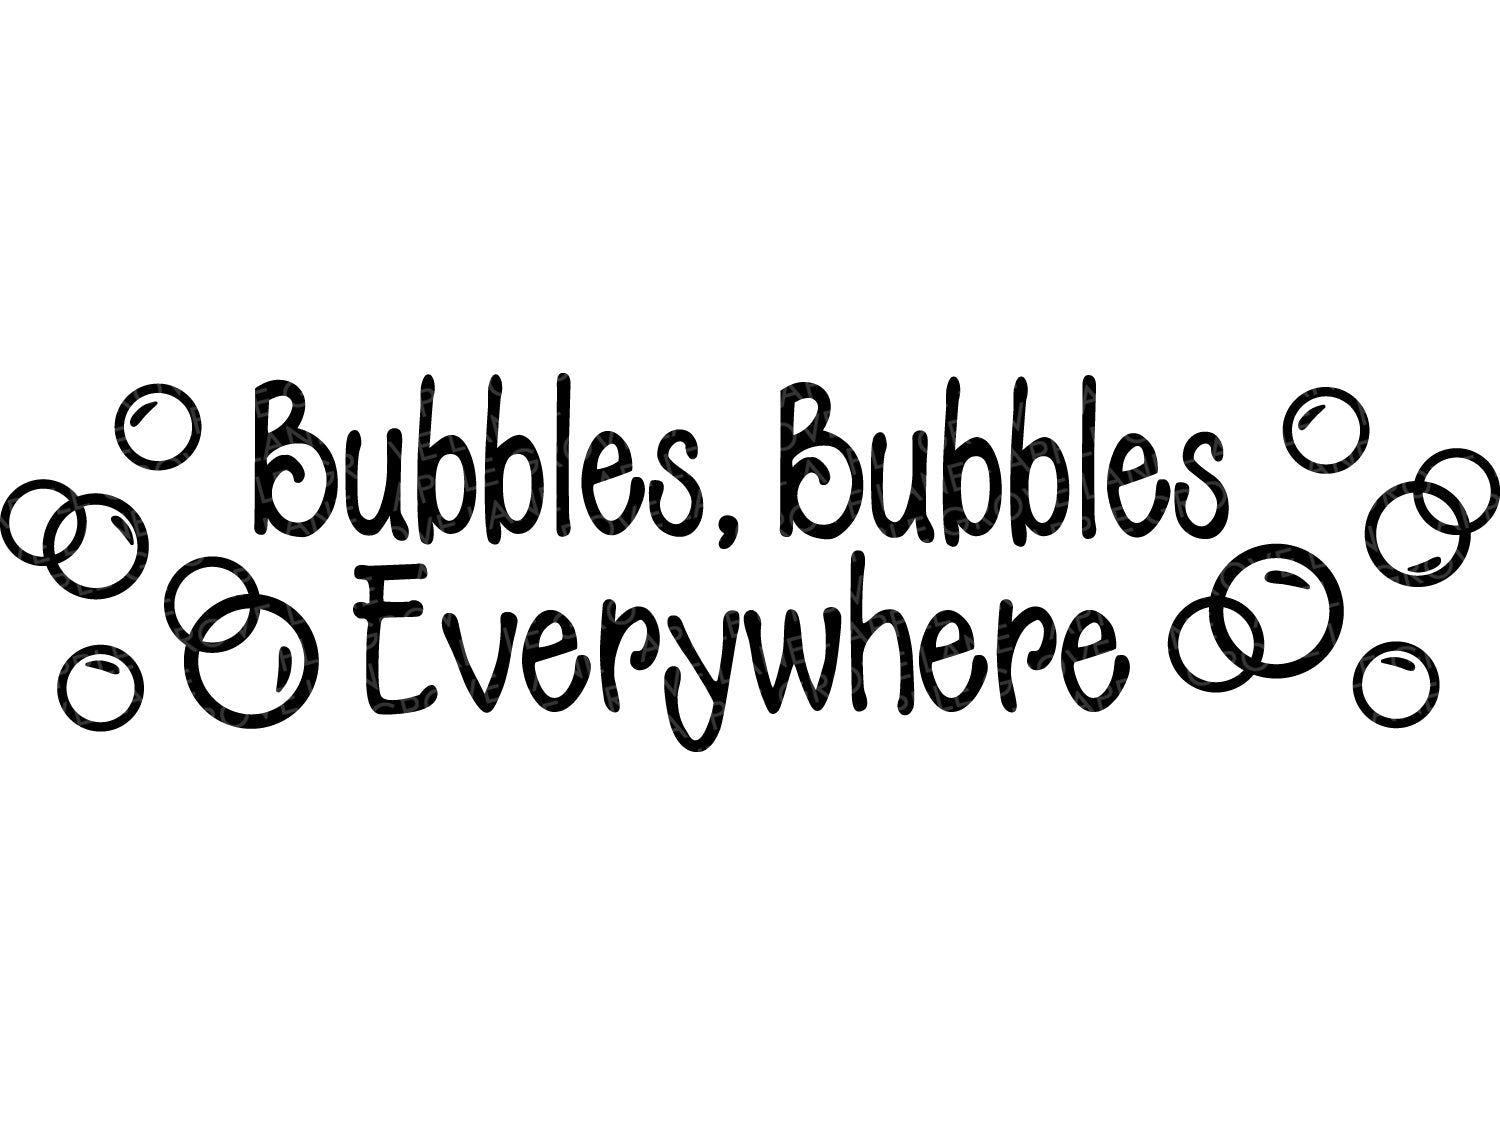 Bubble Bath Svg - Bubbles Bubbles Everywhere - Bathroom Svg Cut File - Vector Clip Art - Svg Eps Png Dxf